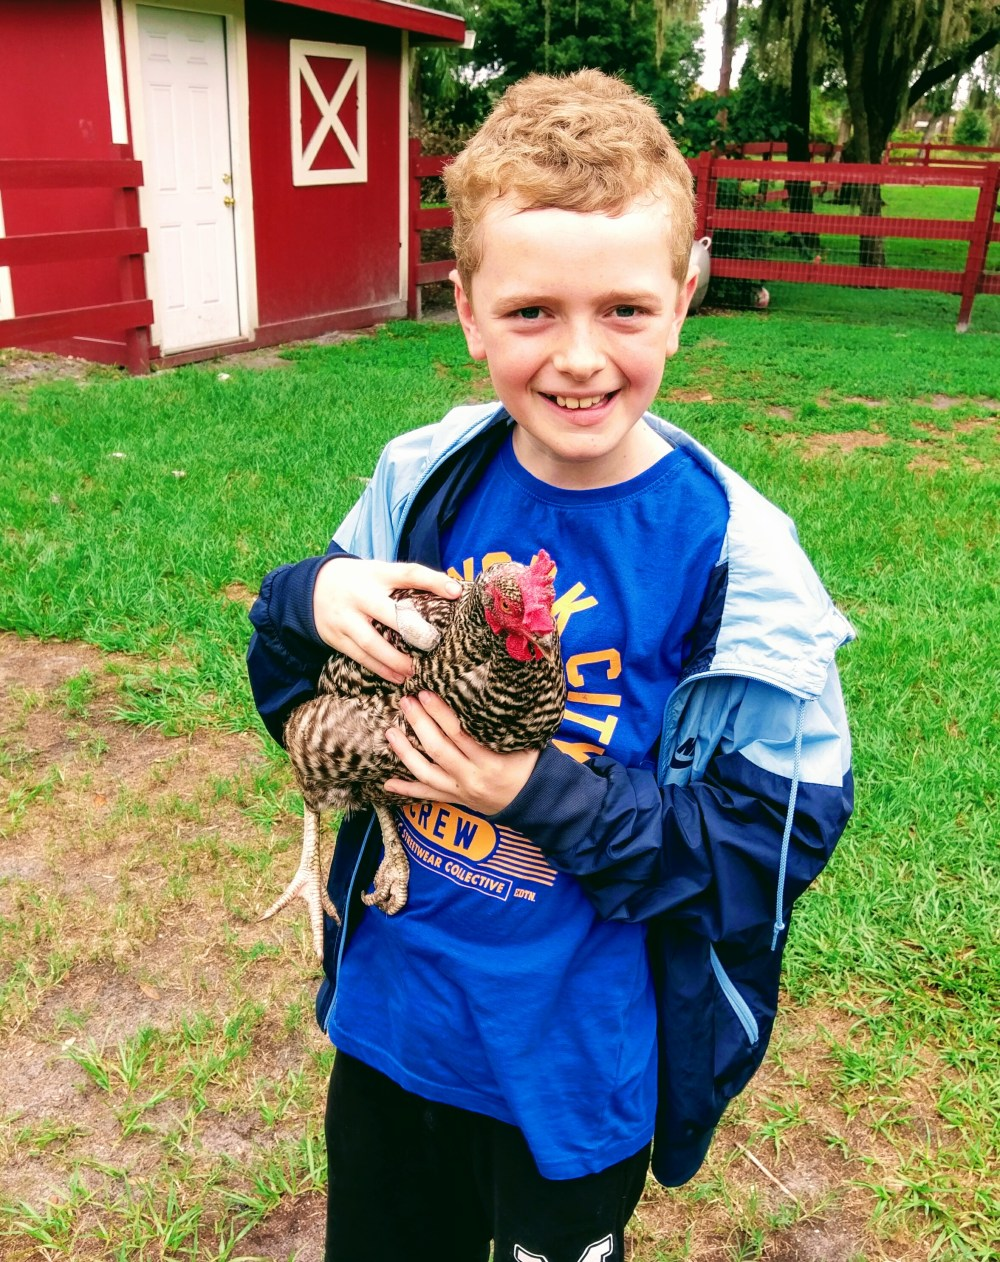 A smiling boy stood in a field and holding a chicken!